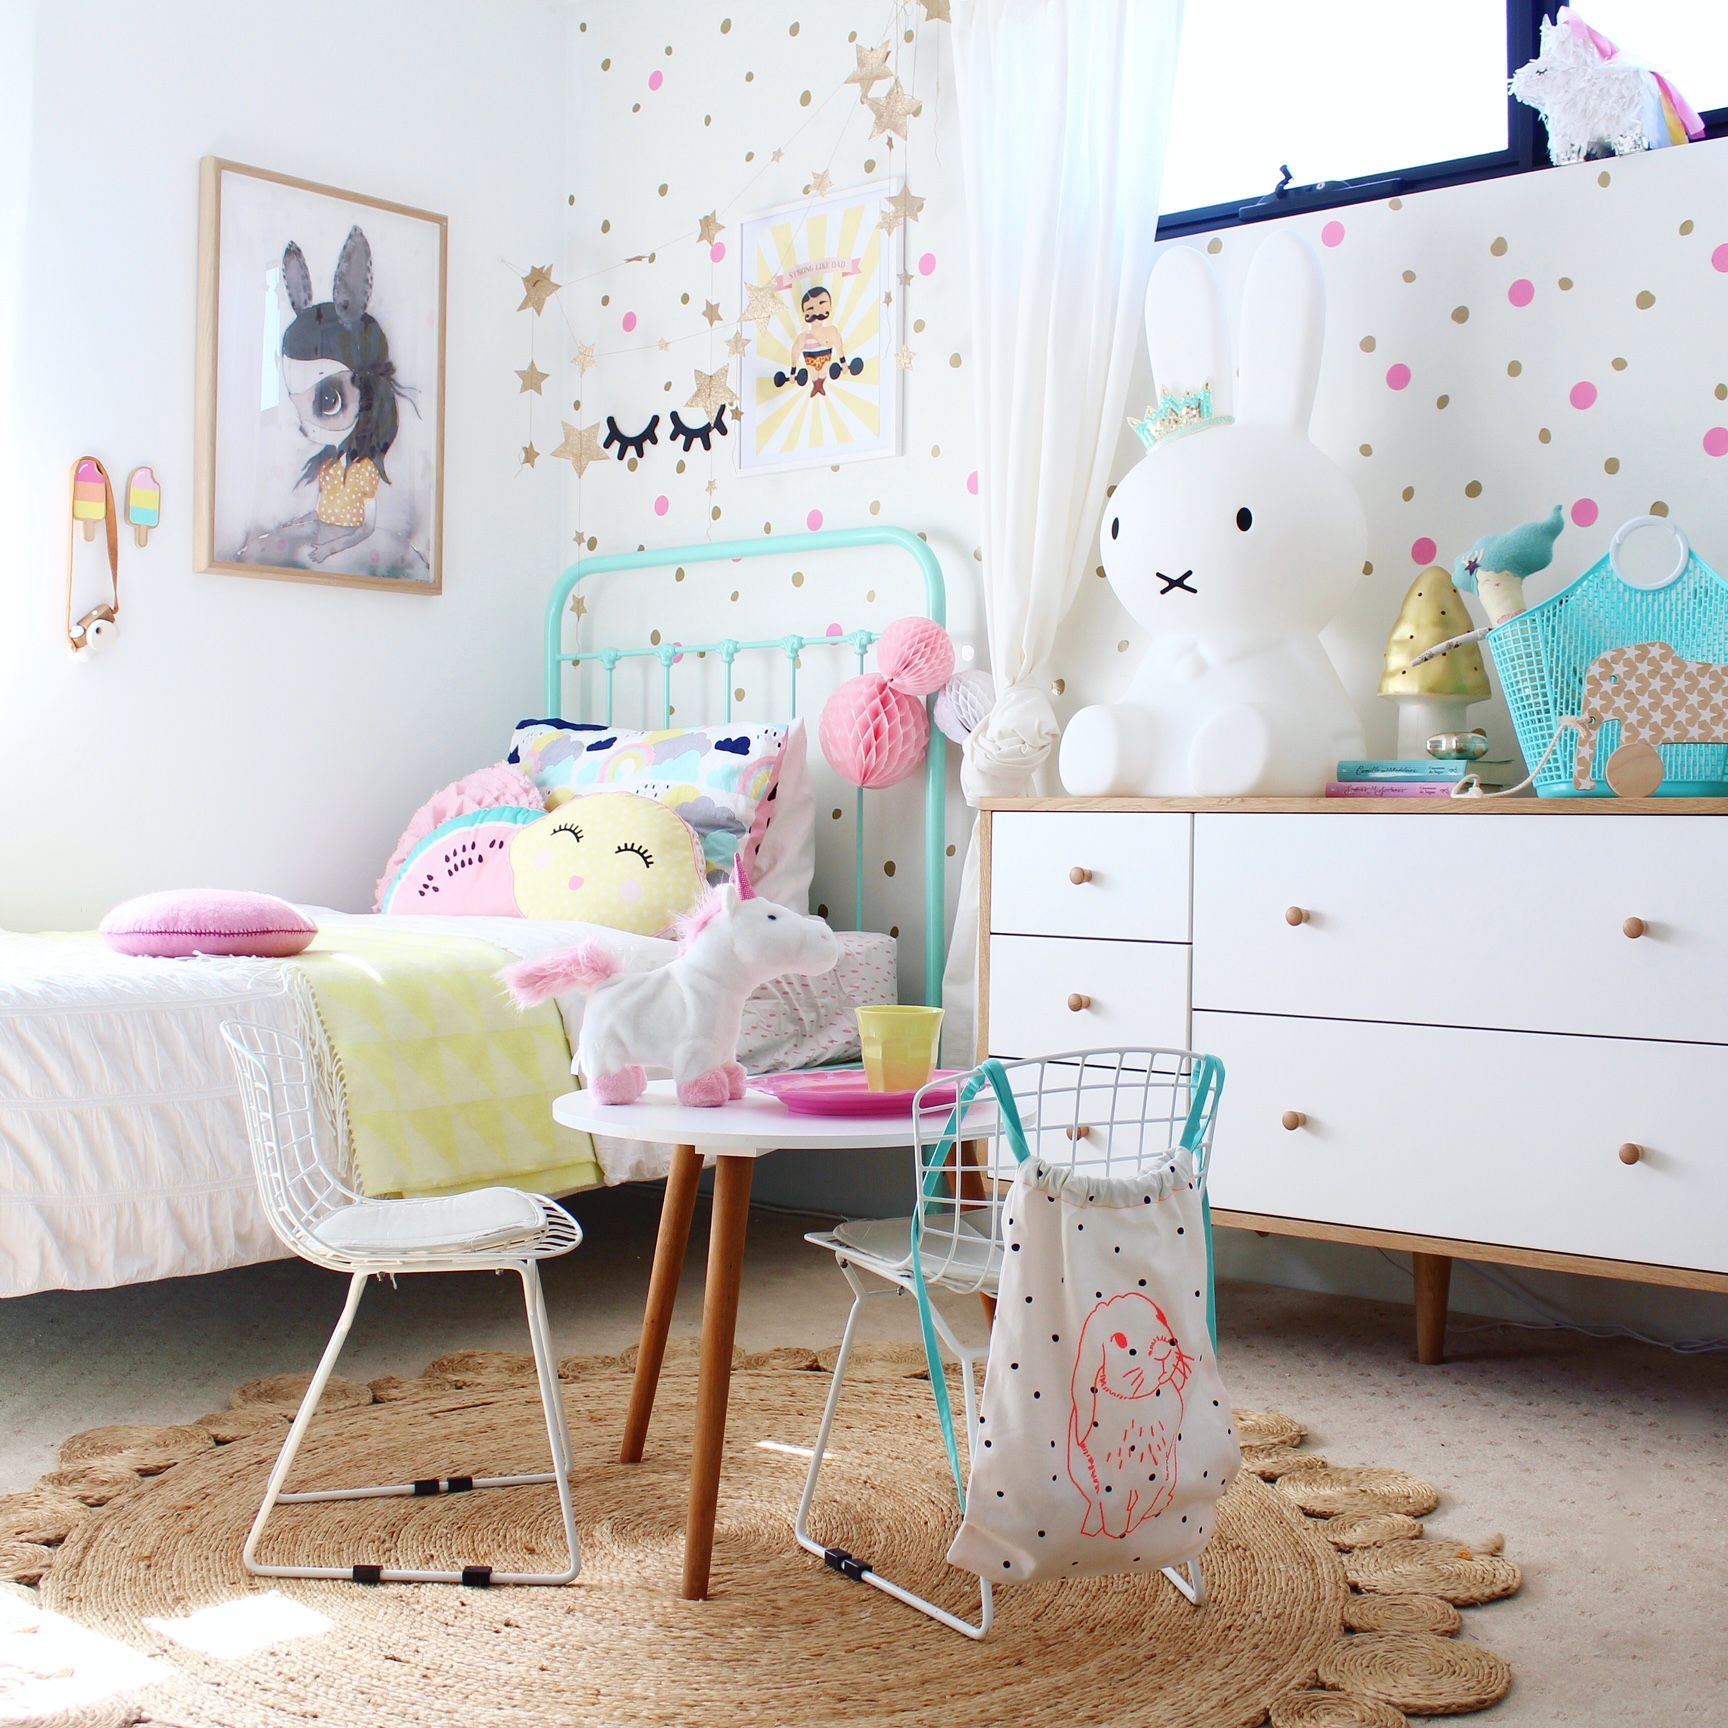 Girls Bedroom Paint Ideas Polka Dots vintage kids rooms - children's decor and interior design ideas